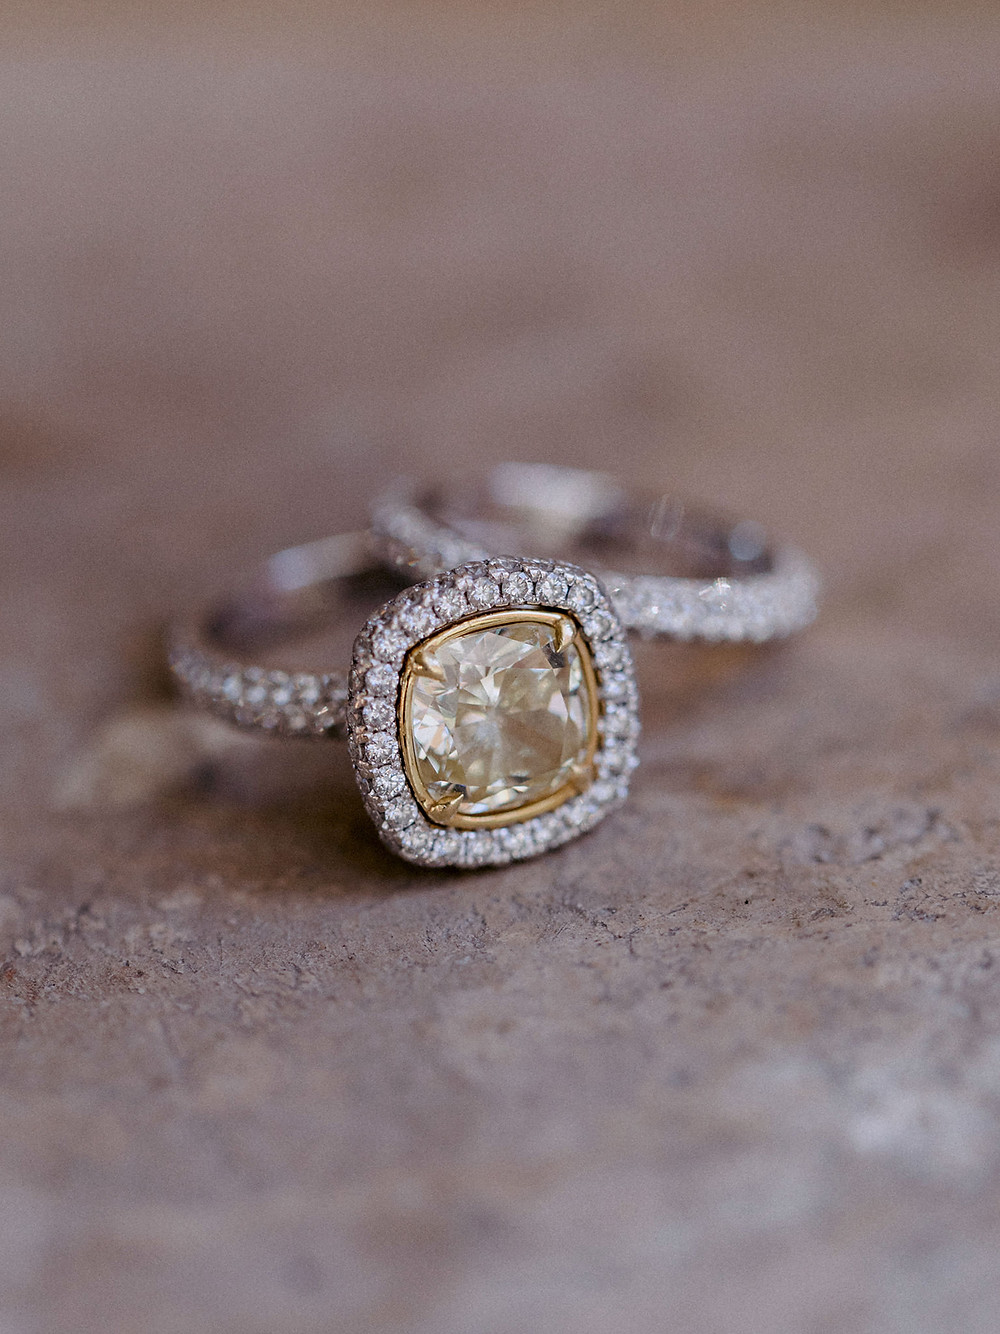 A yellow diamond engagement ring with white diamond halo